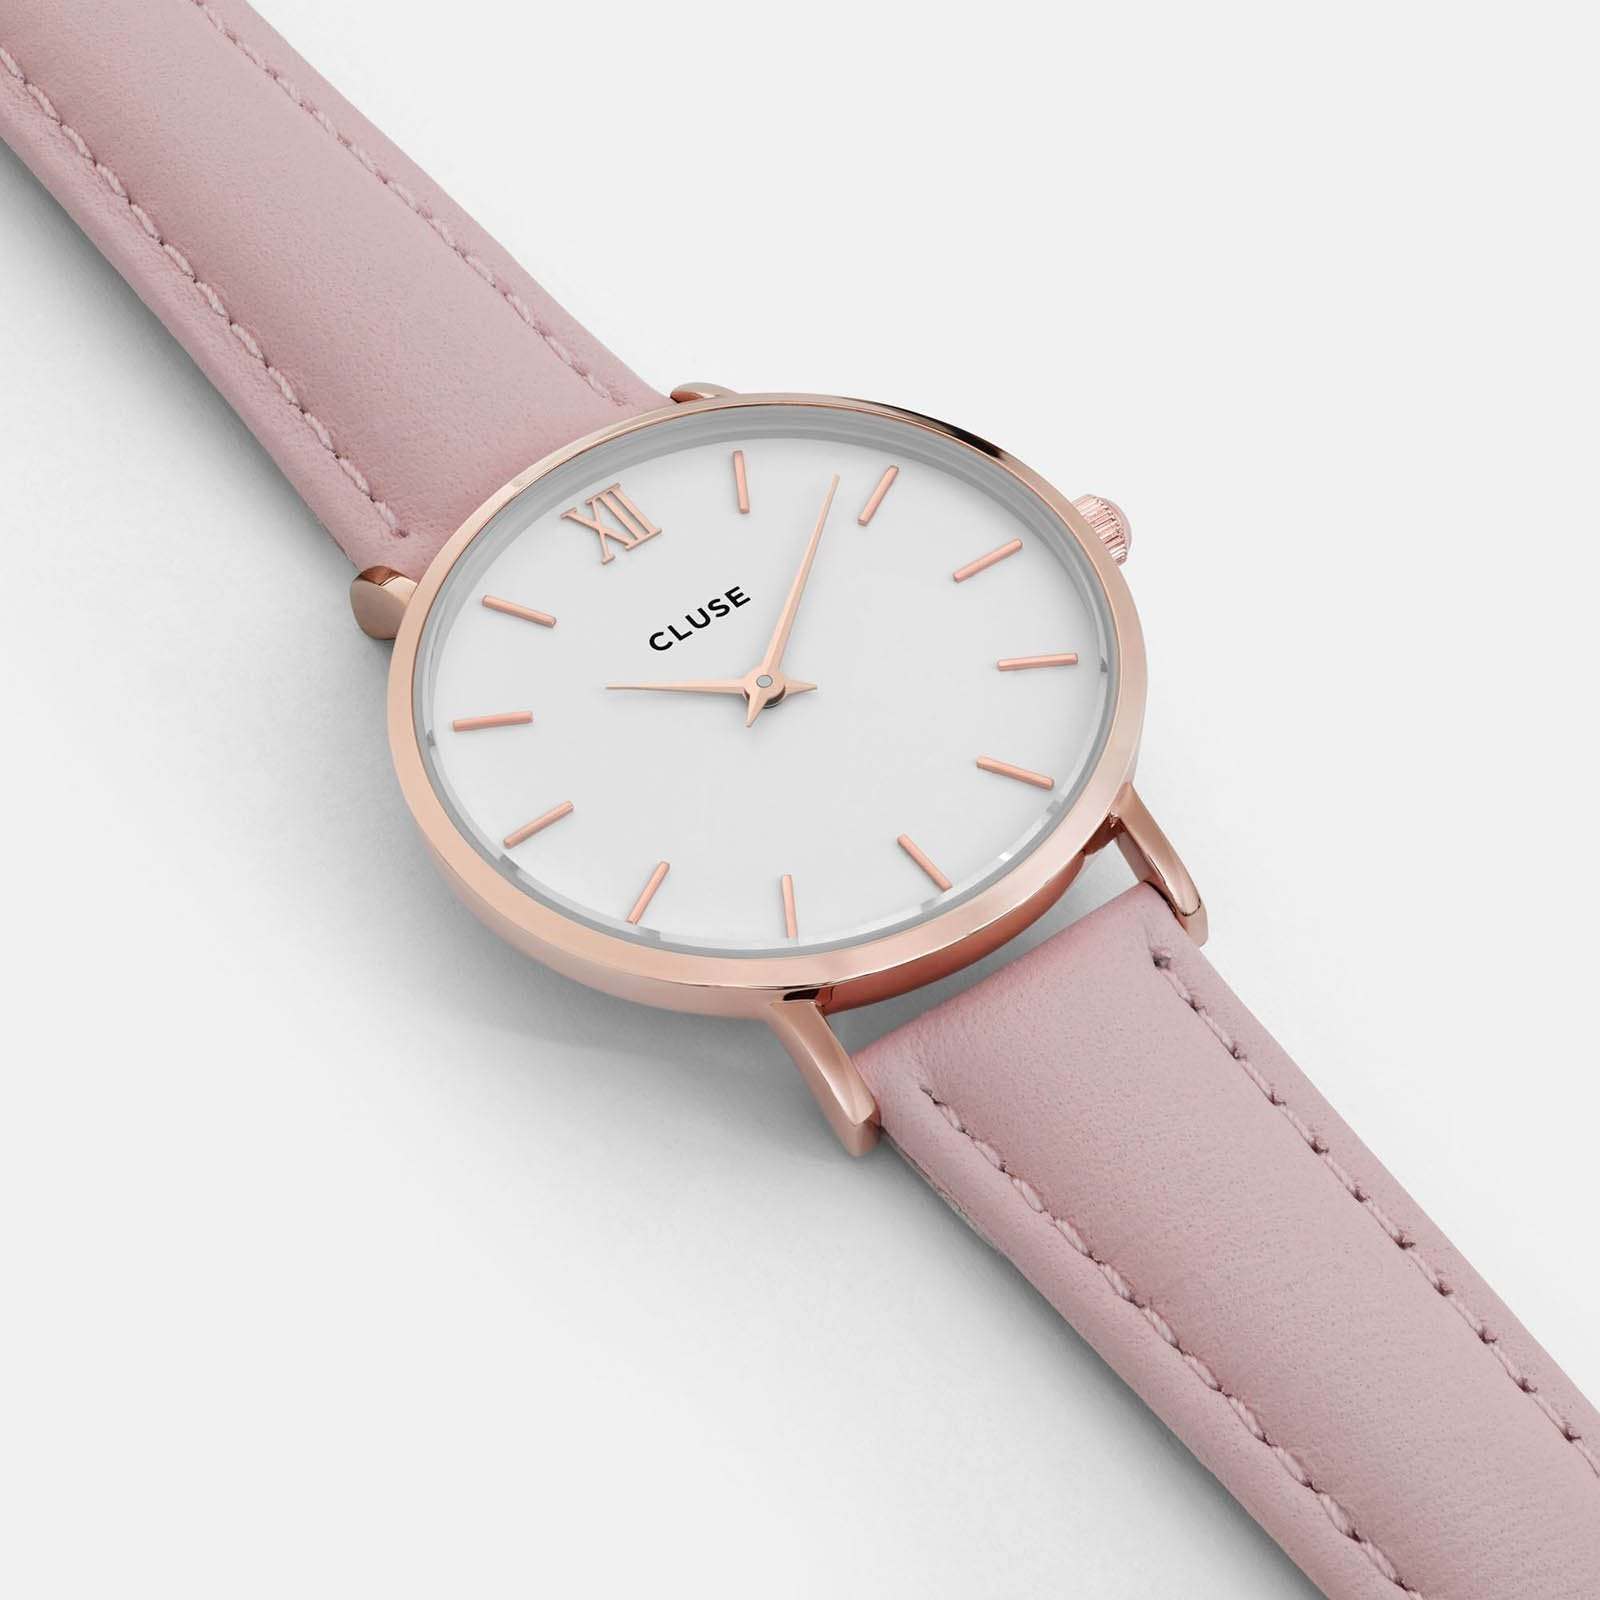 Minuit Rose Cl30001 Gold Boutique Whitepink Officielle Cluse lc3FTK1J